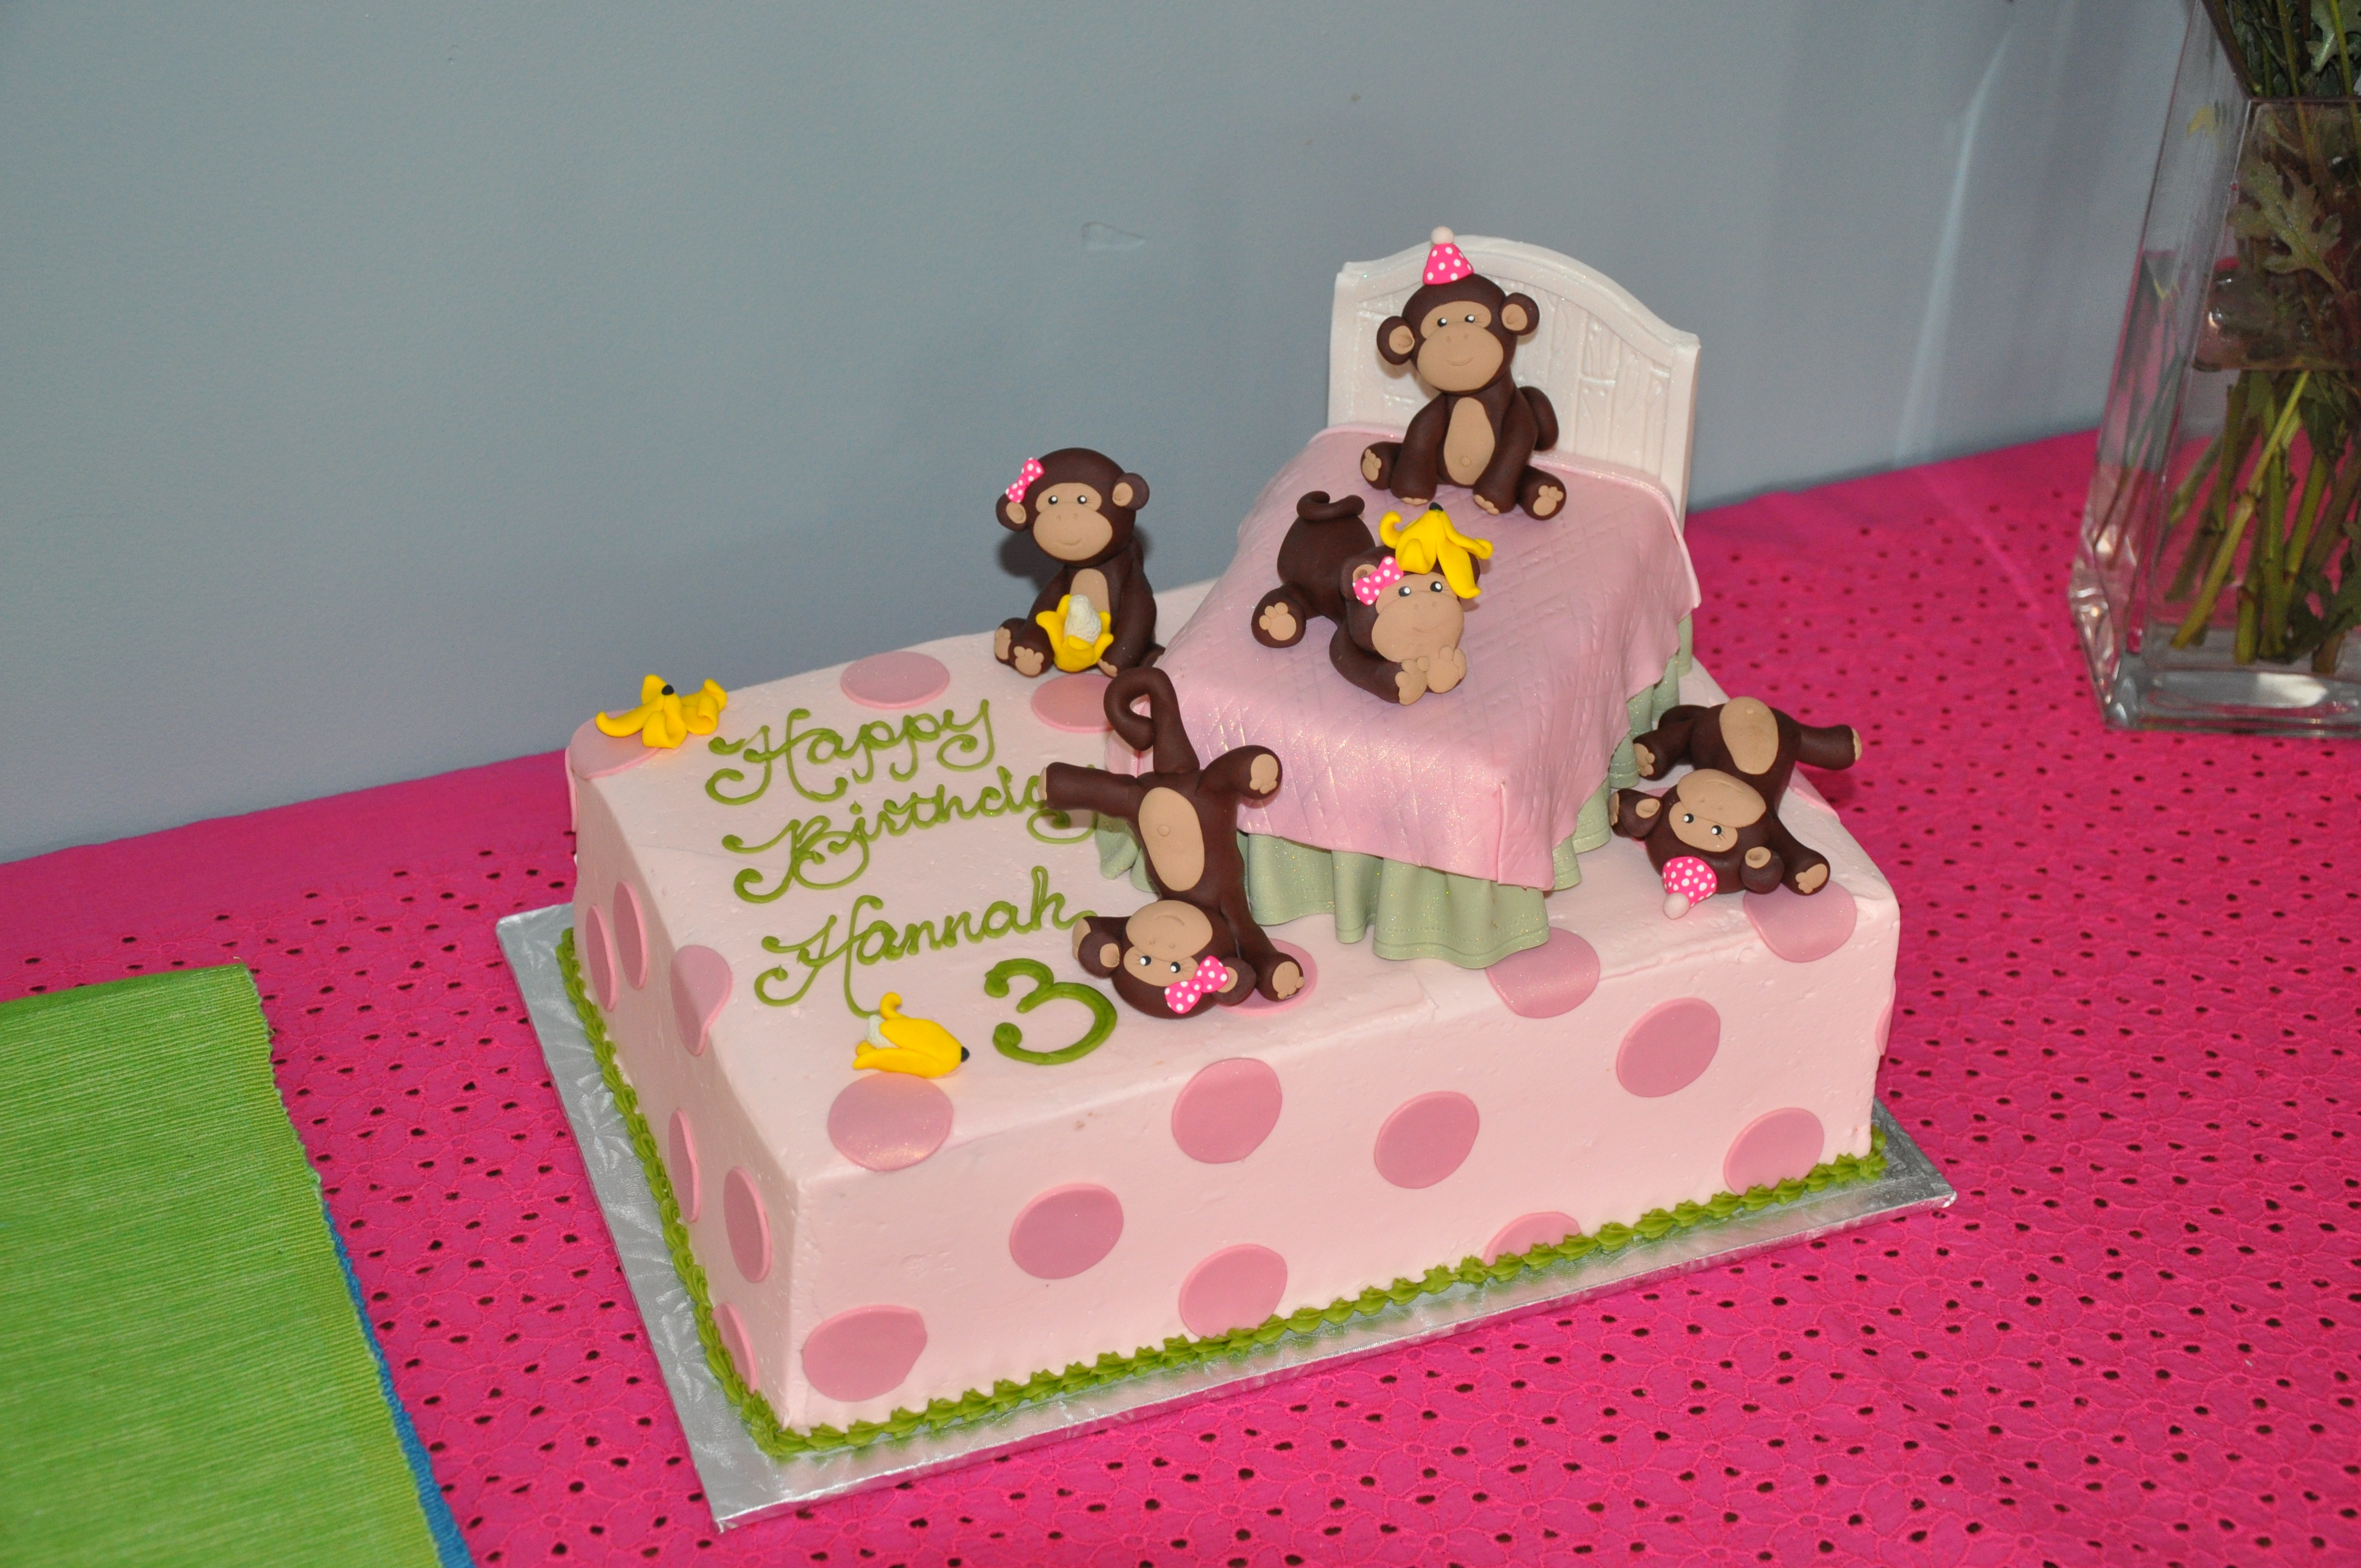 5 little monkeys jumping on the bed rhyme gallery image and happy 3rd birthday hannah amipublicfo Image collections